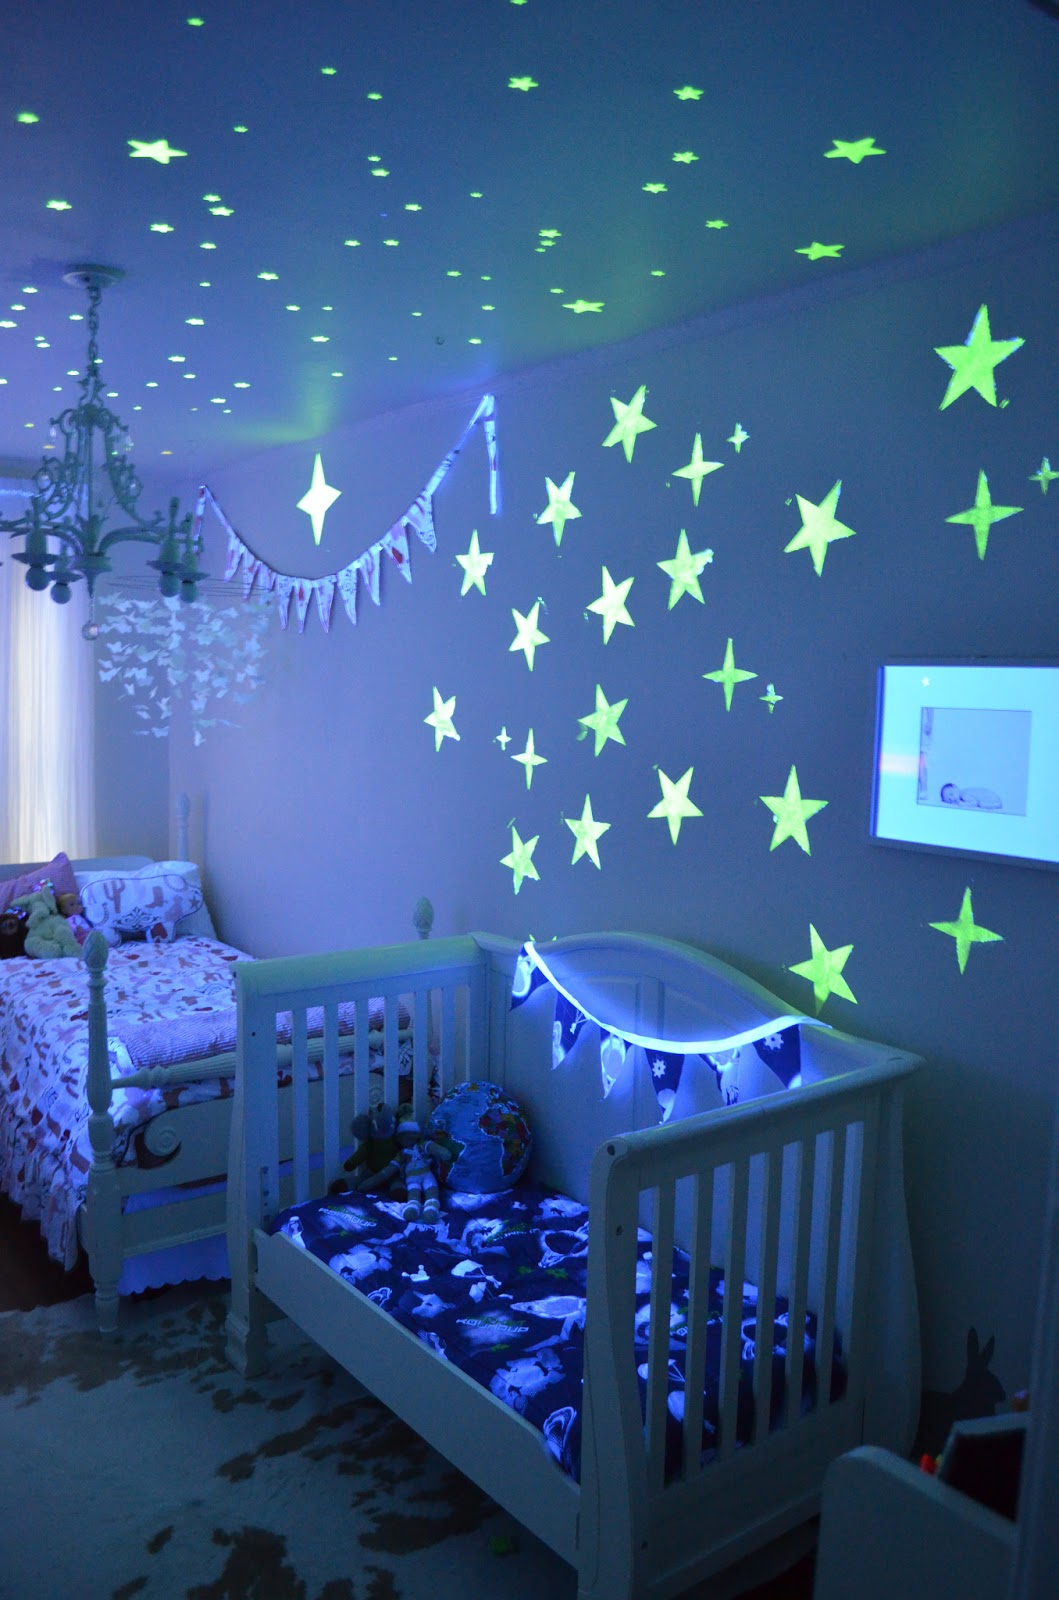 disney paint mom room reveal party sponsored marinobambinos. Black Bedroom Furniture Sets. Home Design Ideas